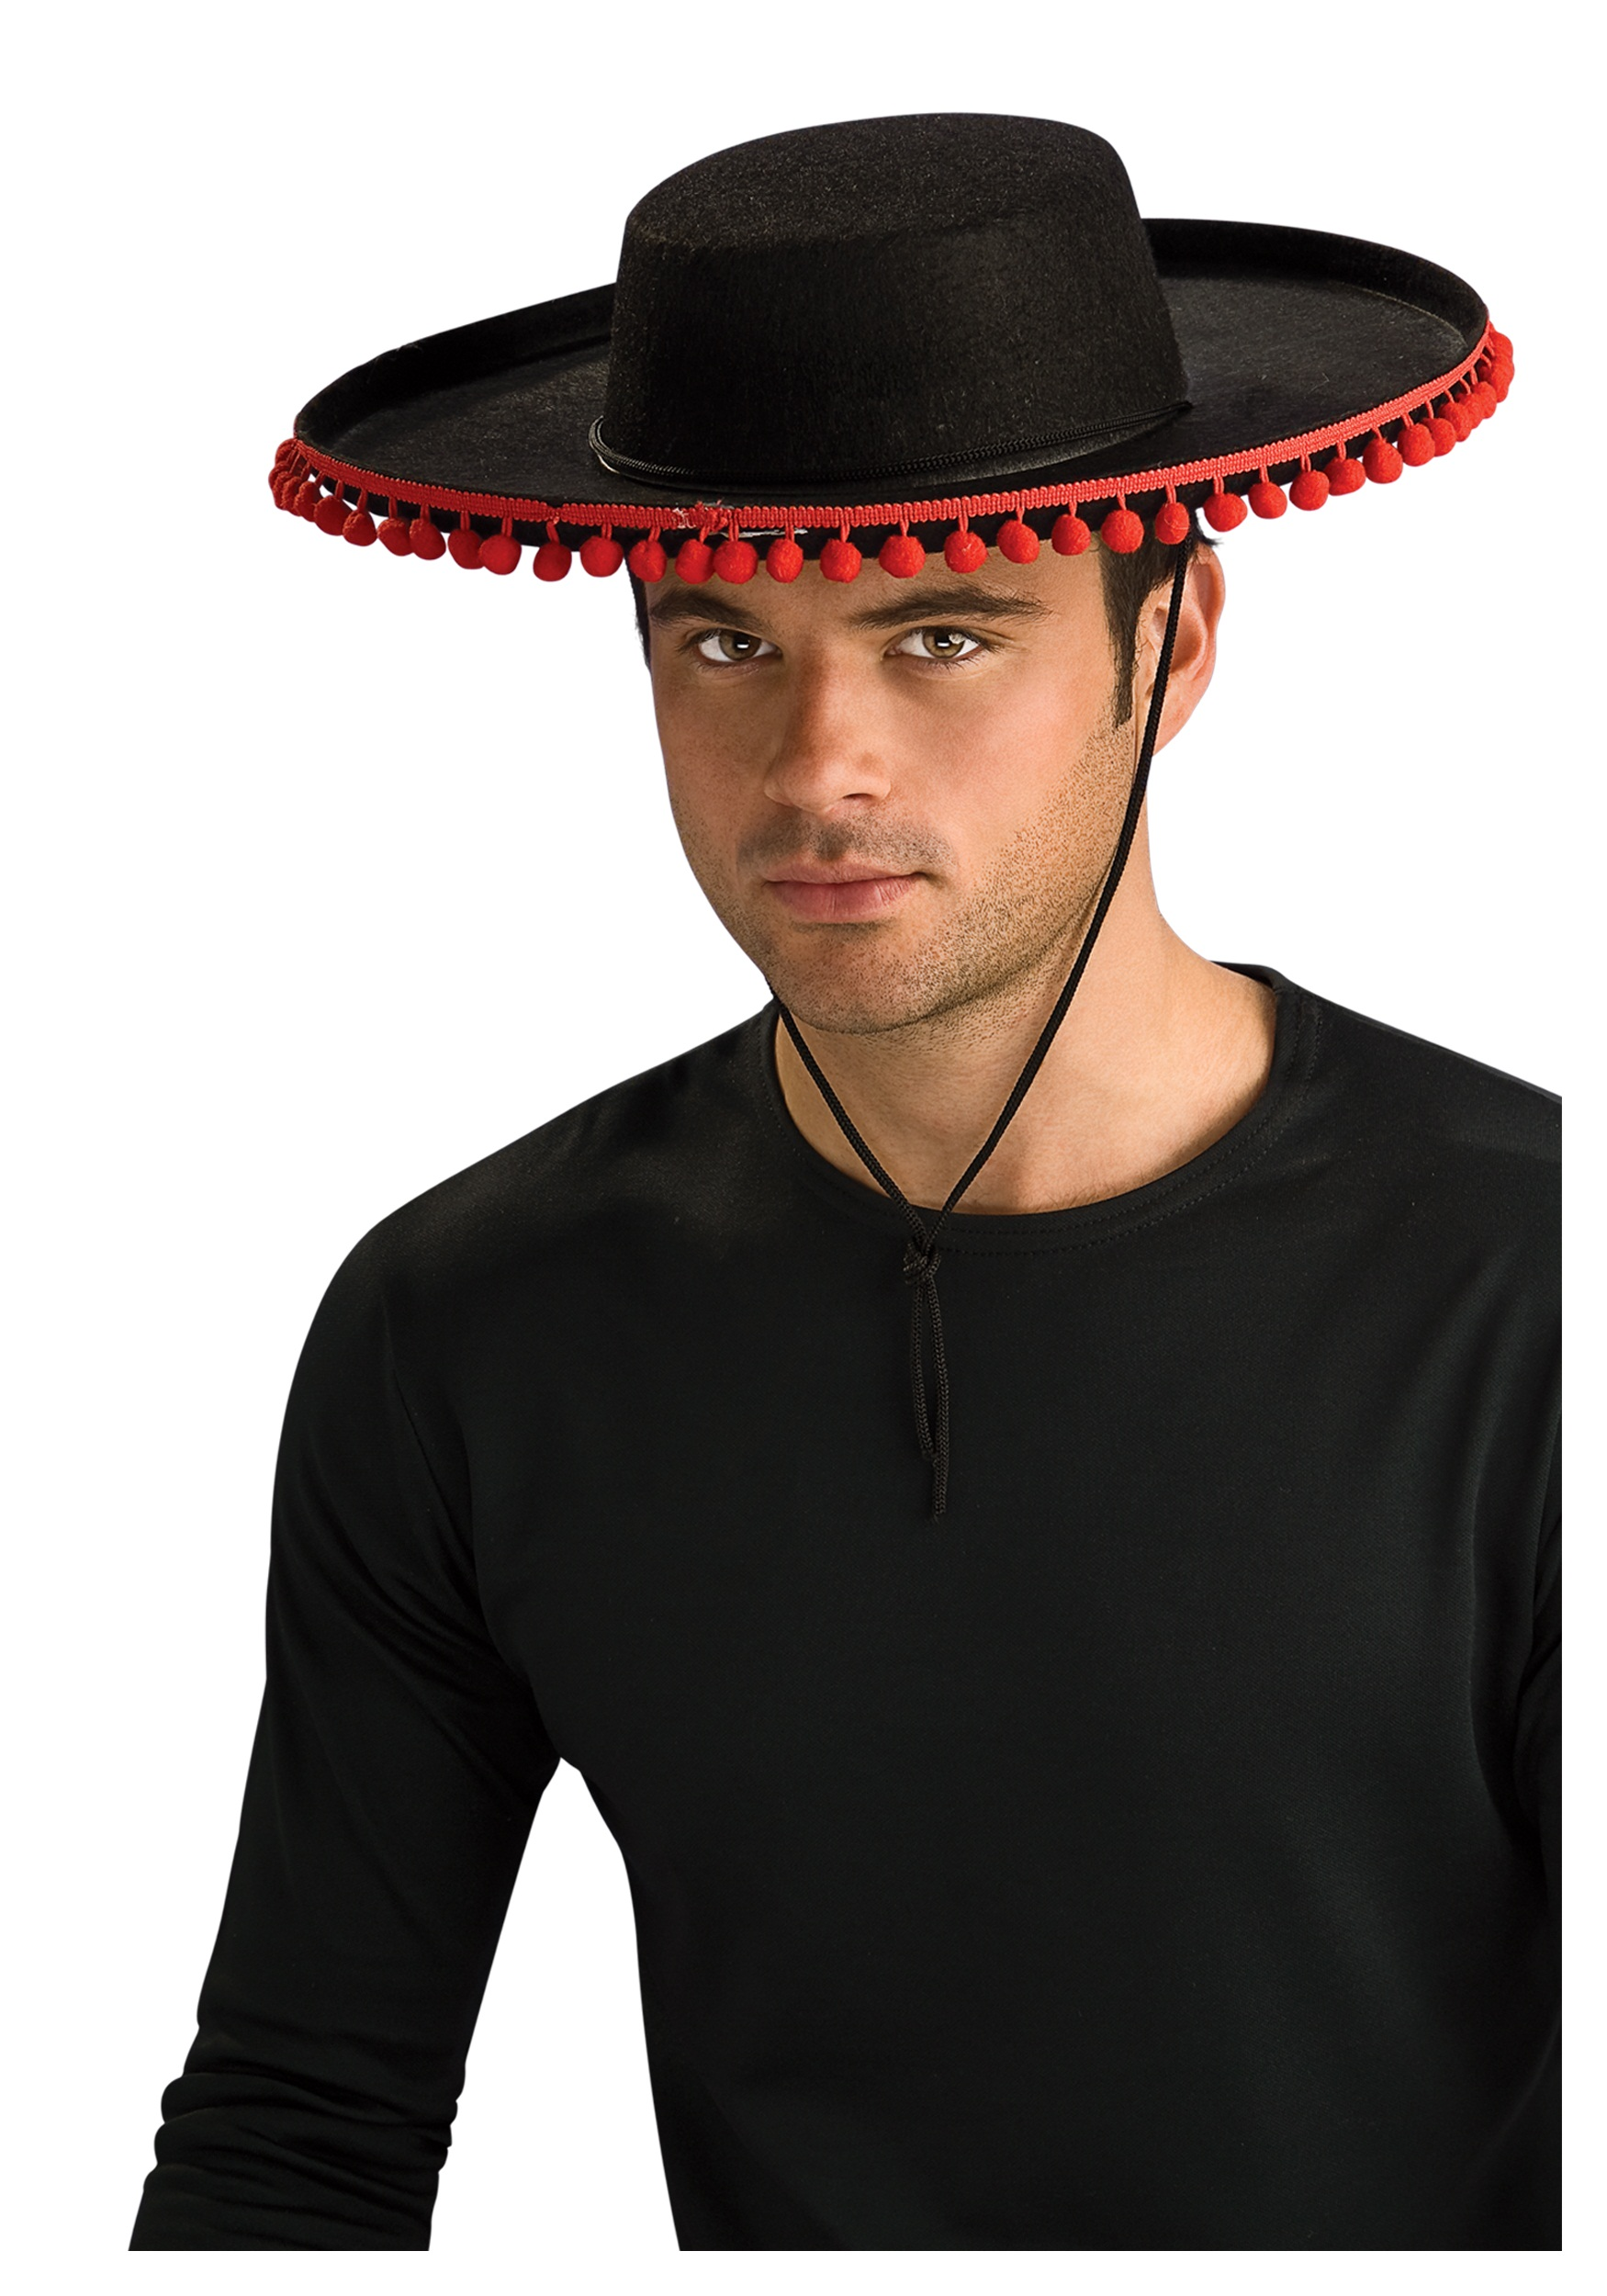 mexican hat spanish girl personals Our network of spanish women in blue gap is the perfect place to make latin friends or find an latina  blue gap gay personals  meet latina women in mexican hat.